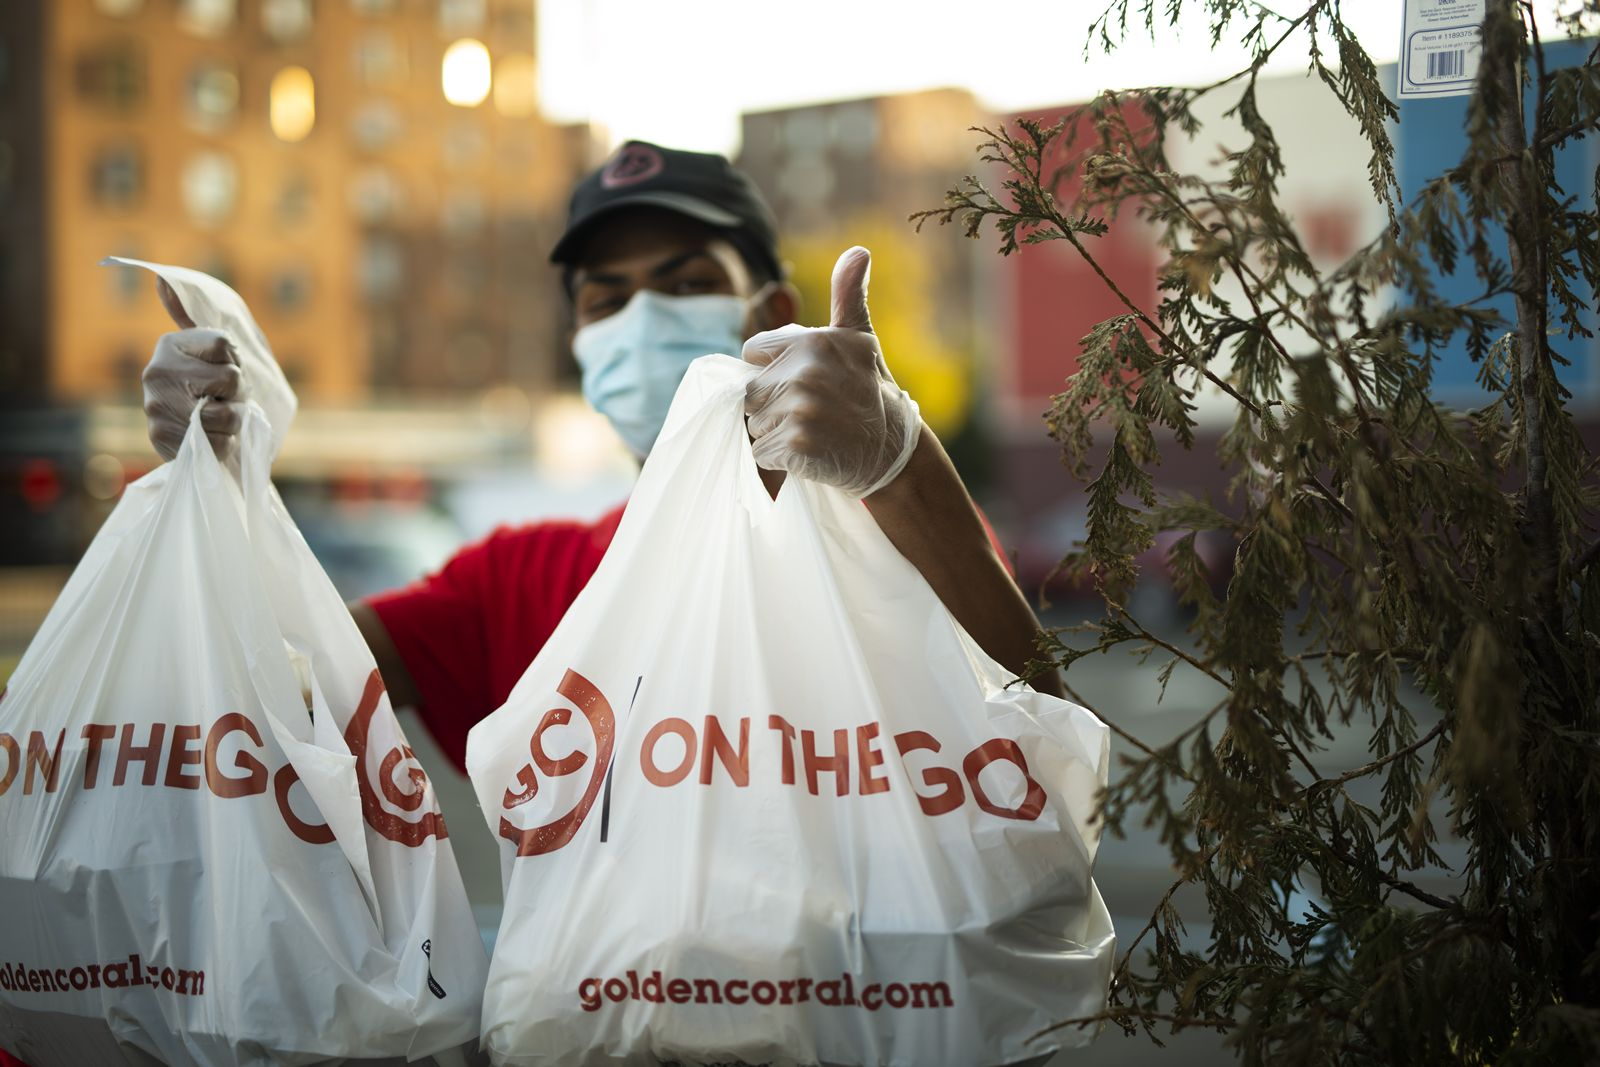 Golden Corral Makes New York City Debut in Bronx, Adding up to 150 Jobs to Local Community